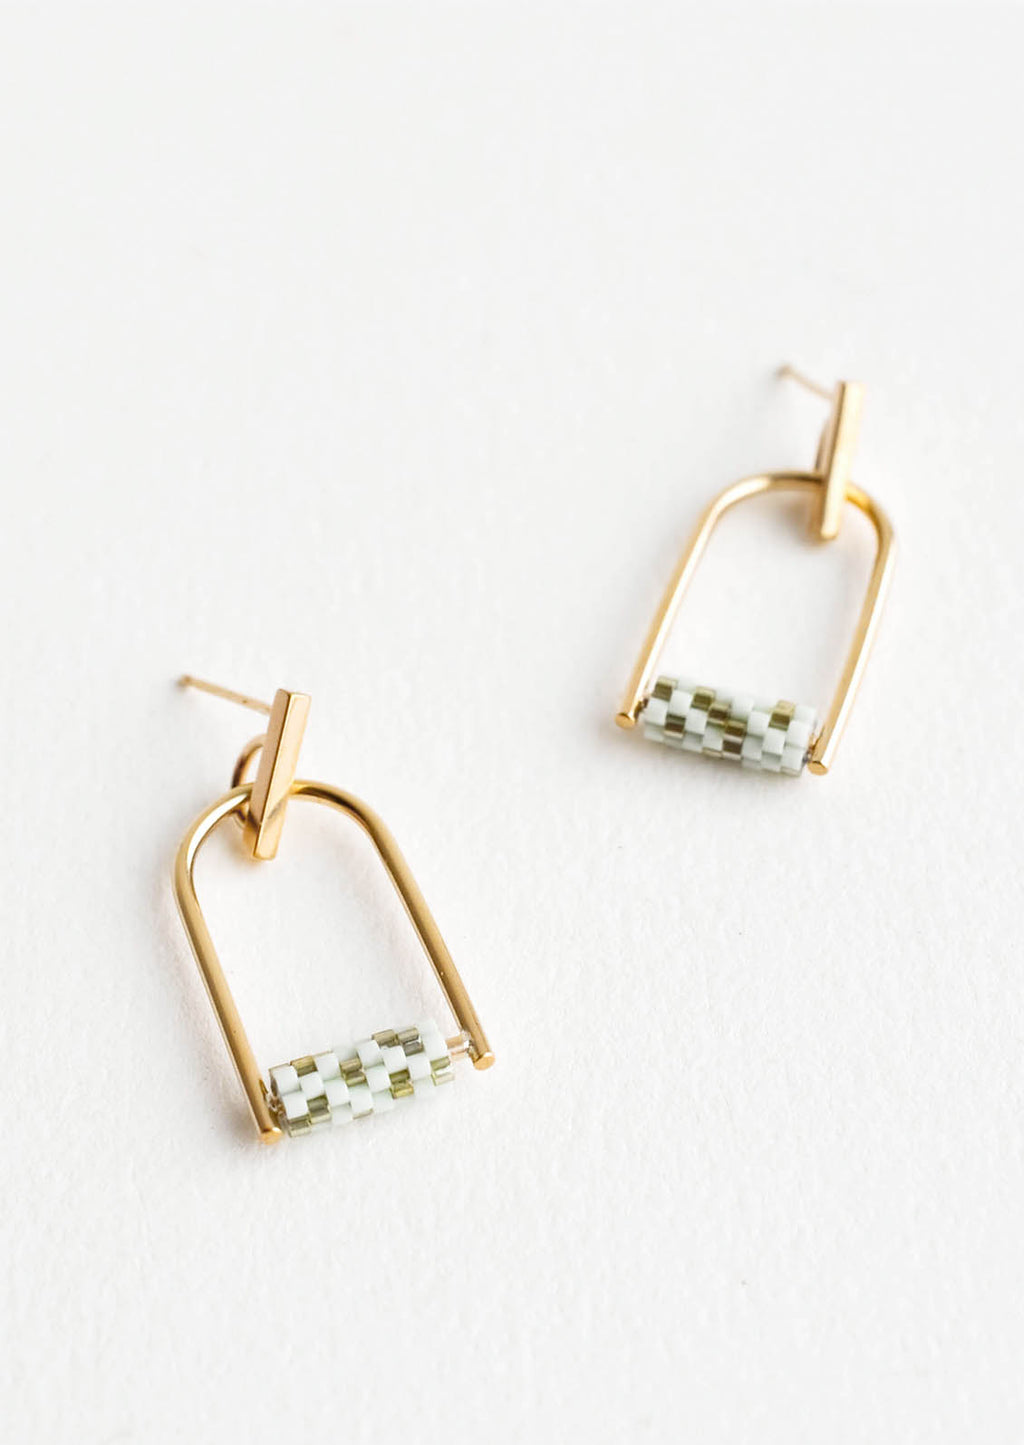 1: Arced gold post back earrings with mint and olive green beads closing off the arc.